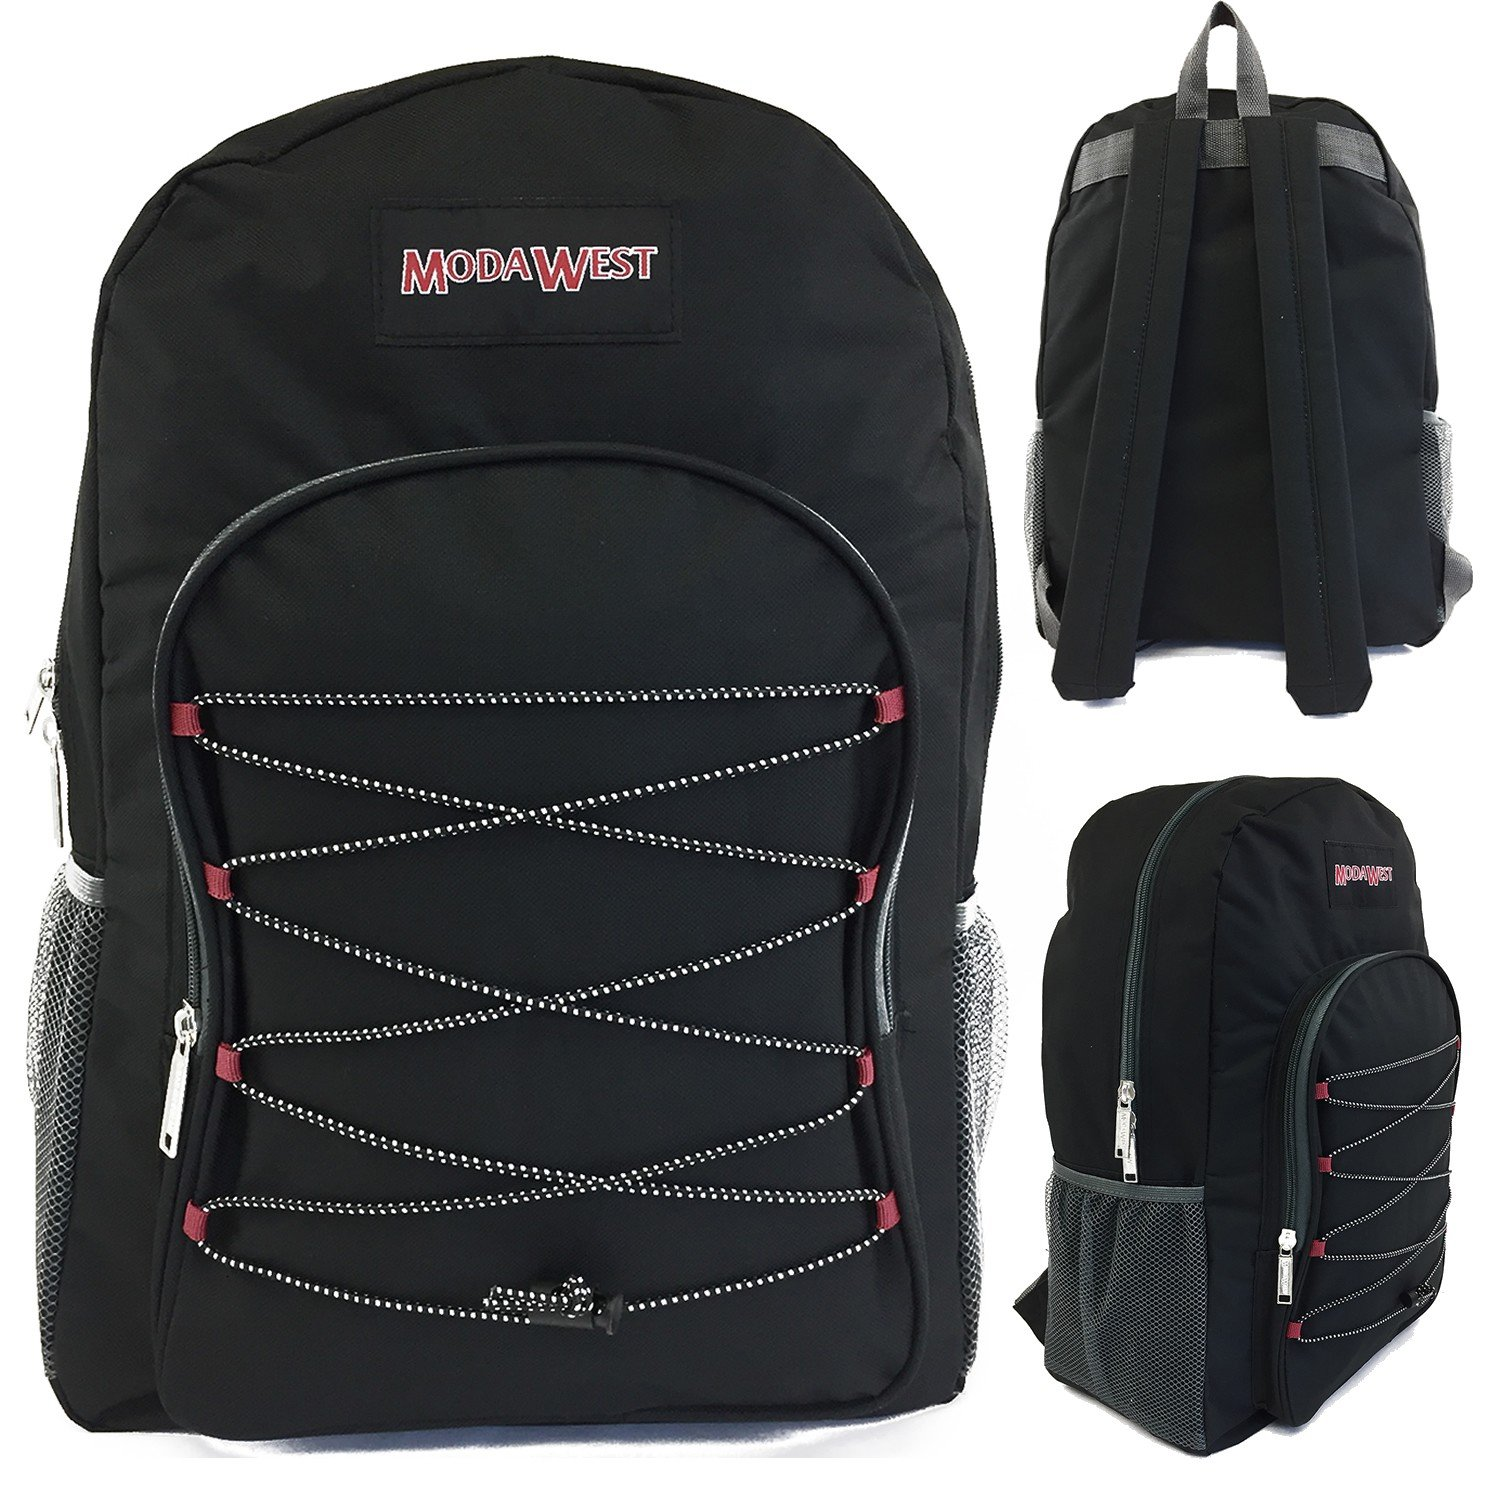 Wholesale 19'' Bungee Design Backpack Asst Colors - Case of 24 by Moda West